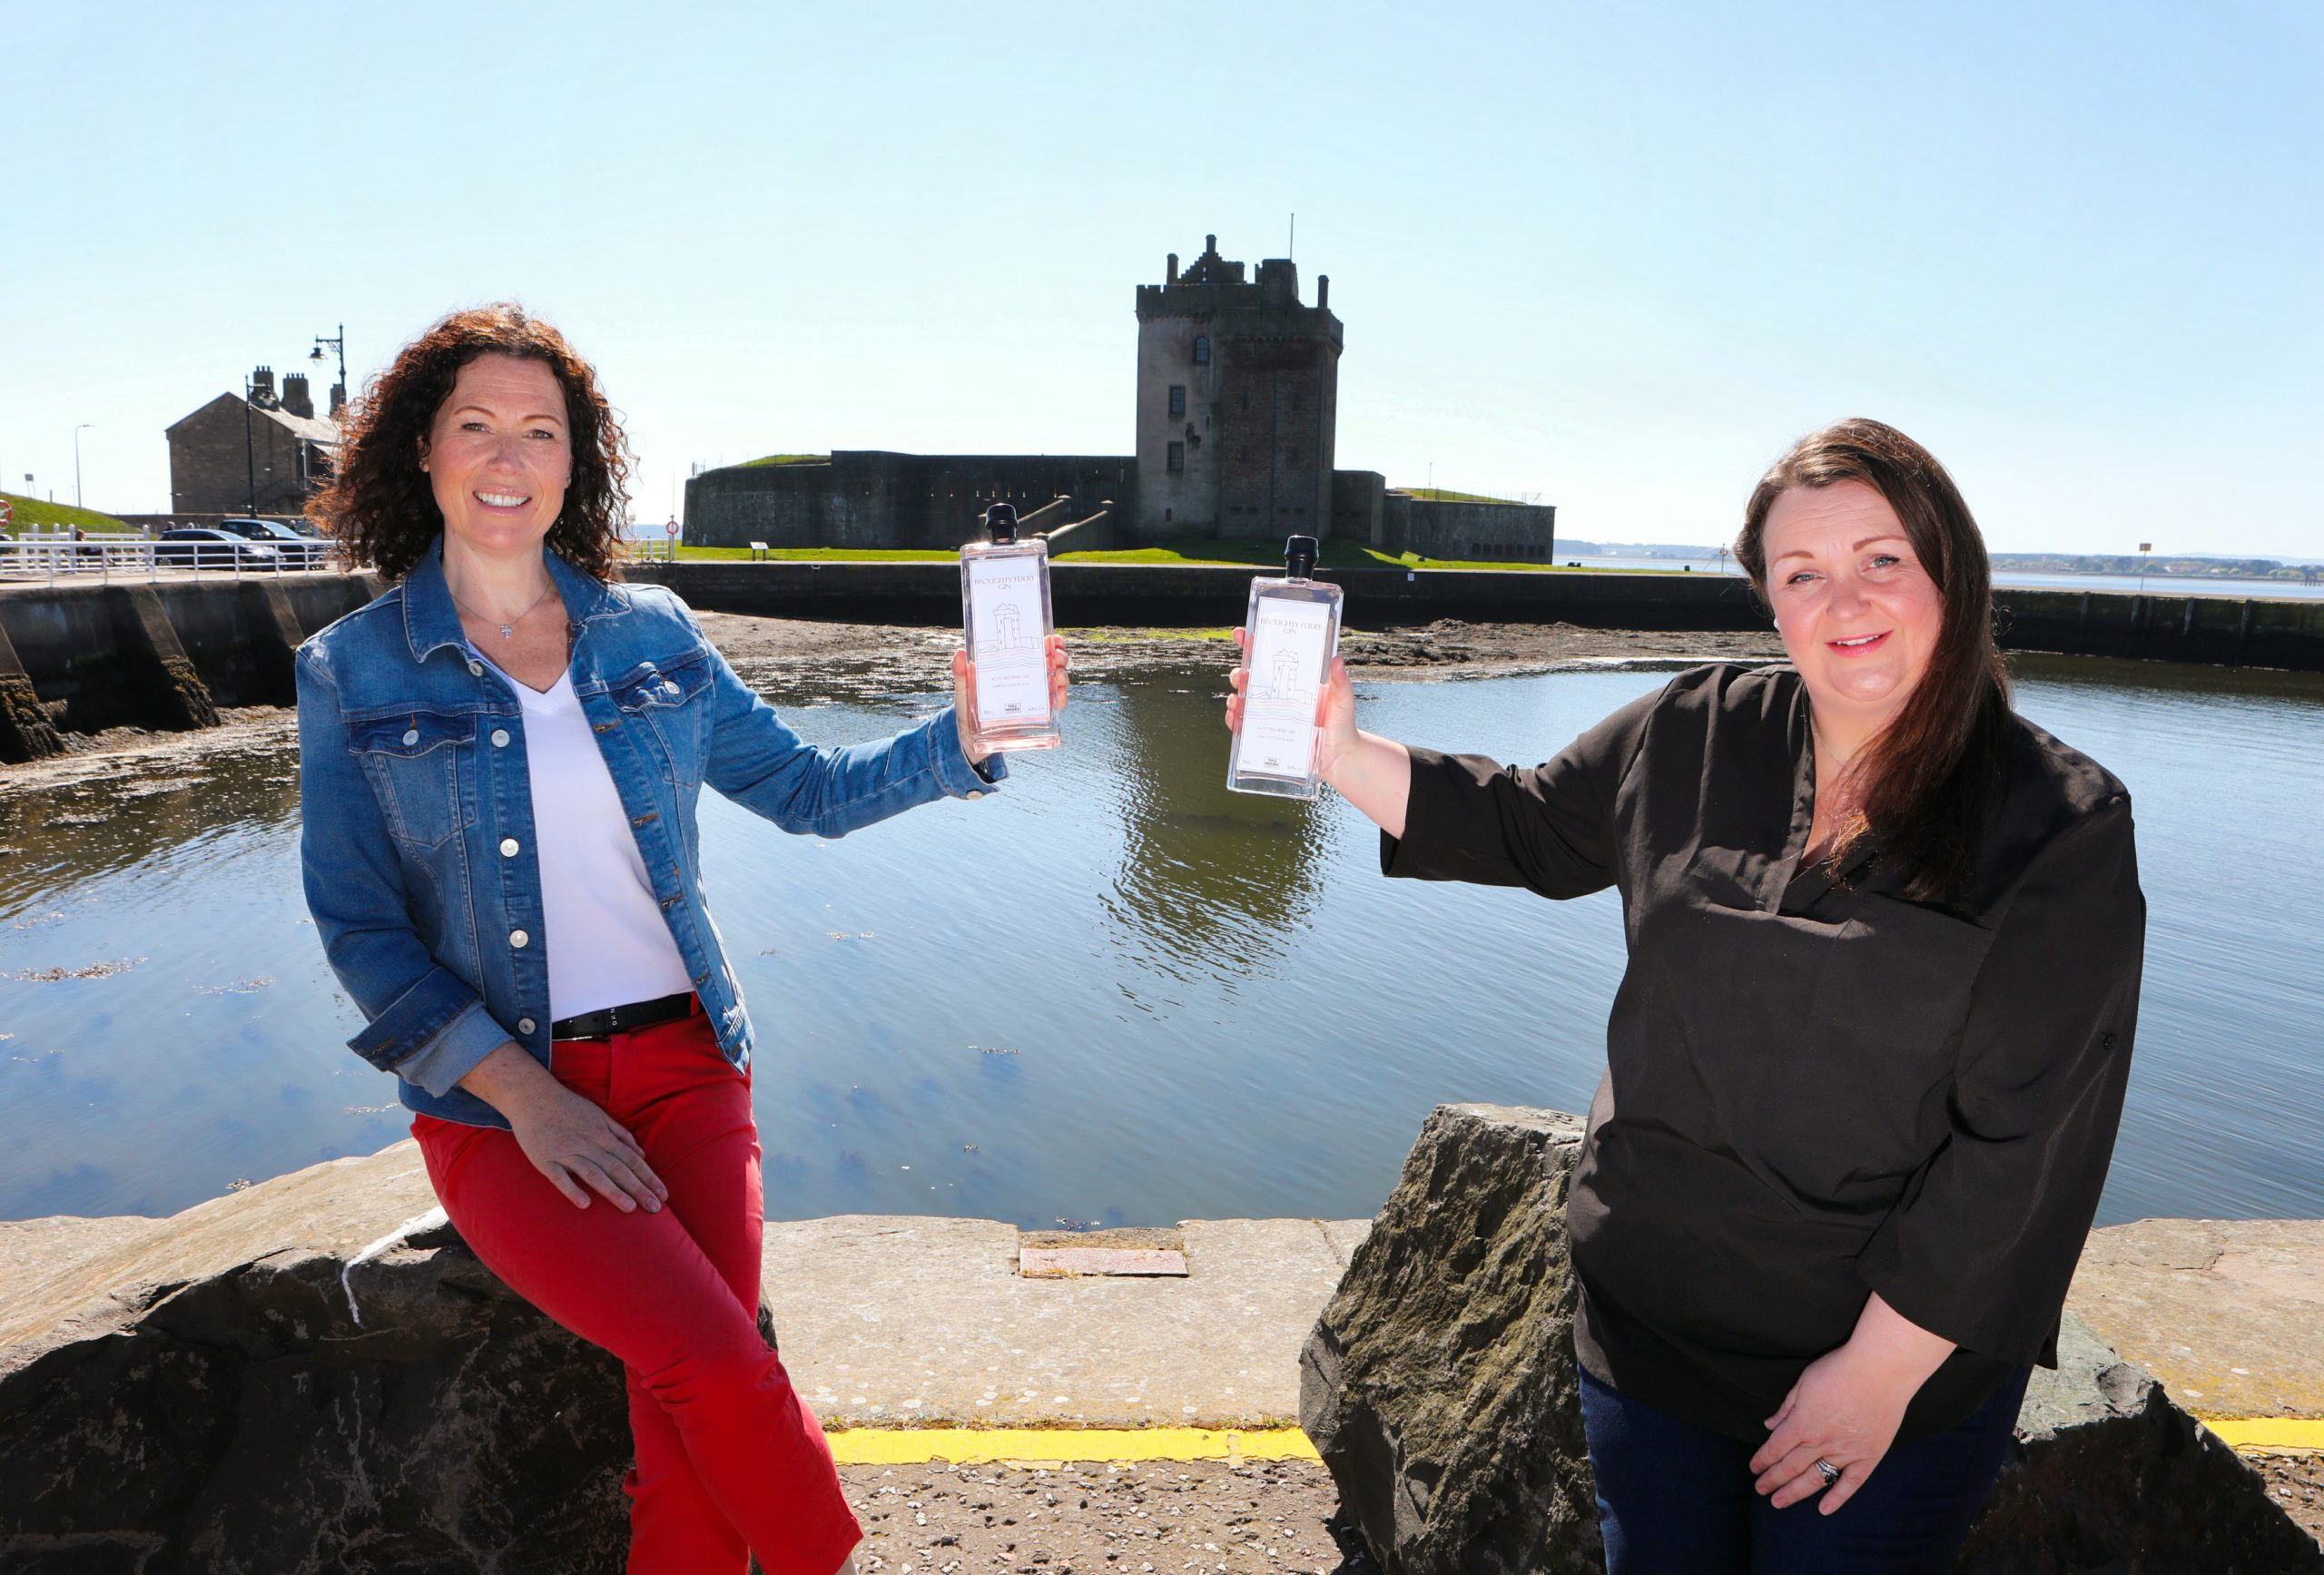 Fiona Walsh & Angela Jarron of Toll House Spirits with their new creation, Broughty Ferry Gin.